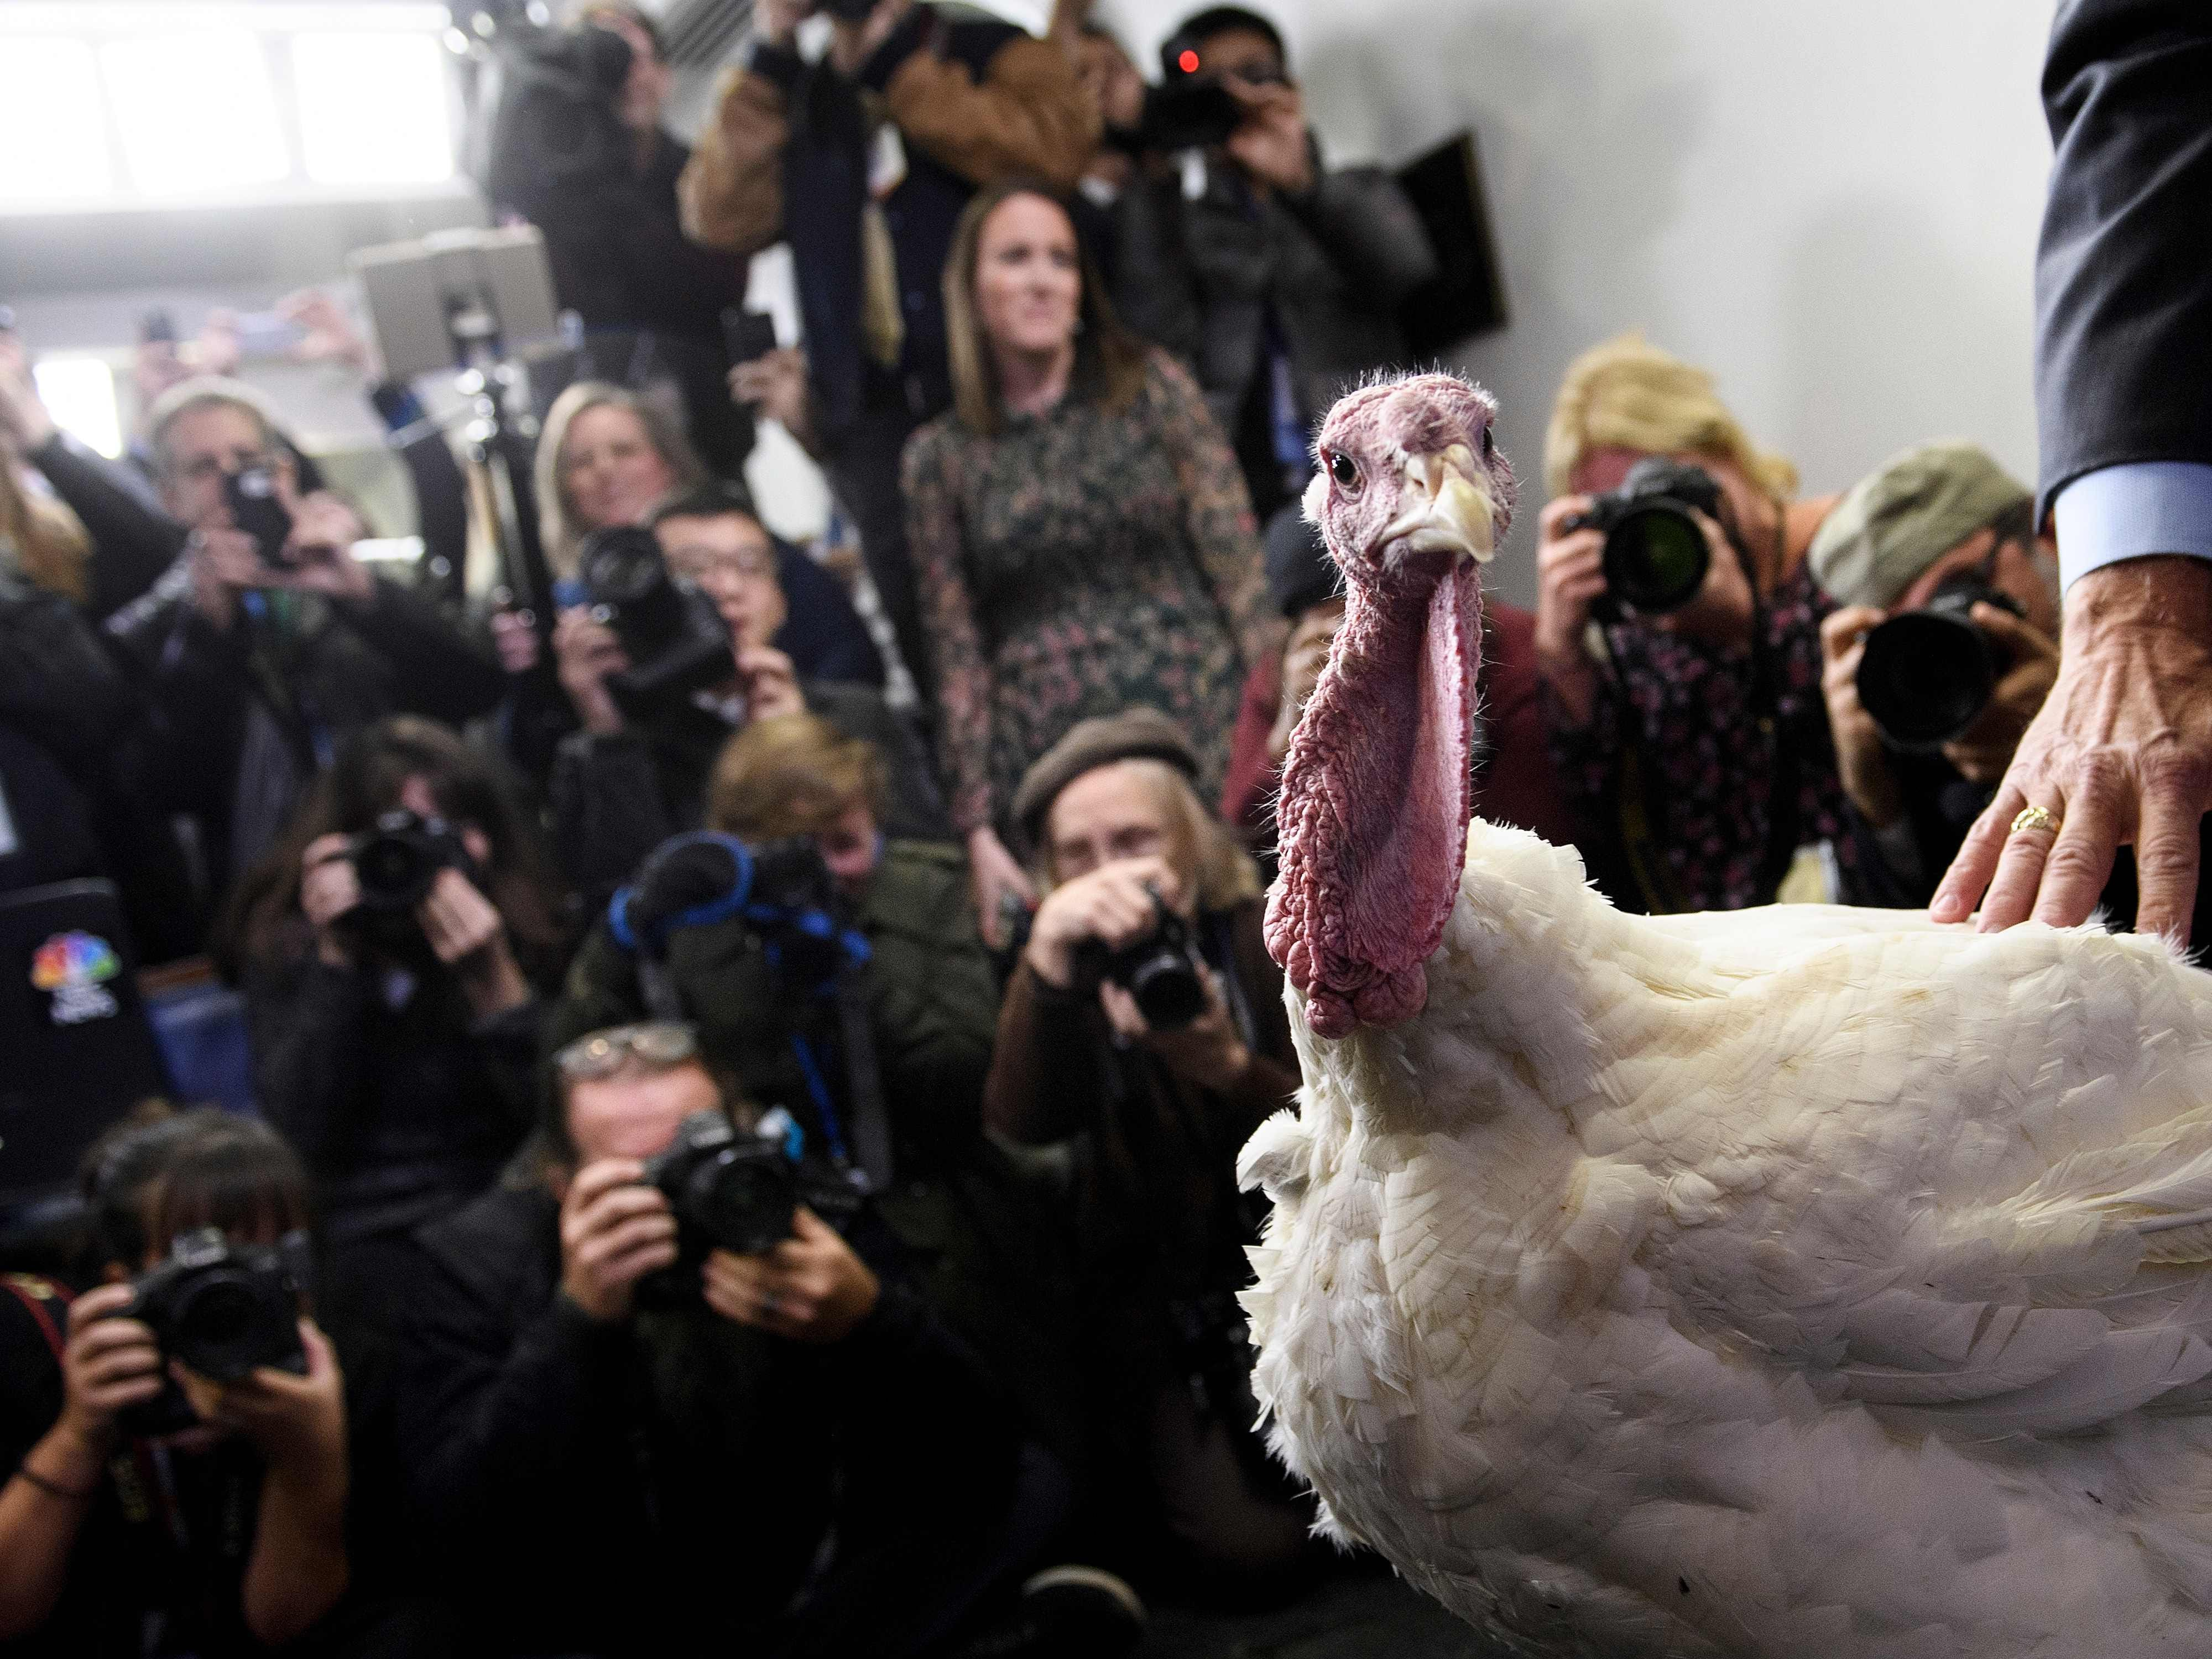 A turkey is shown to the press before President Trump participates in a turkey pardoning before the Thanksgiving holiday, Nov. 20, 2018, in Washington.